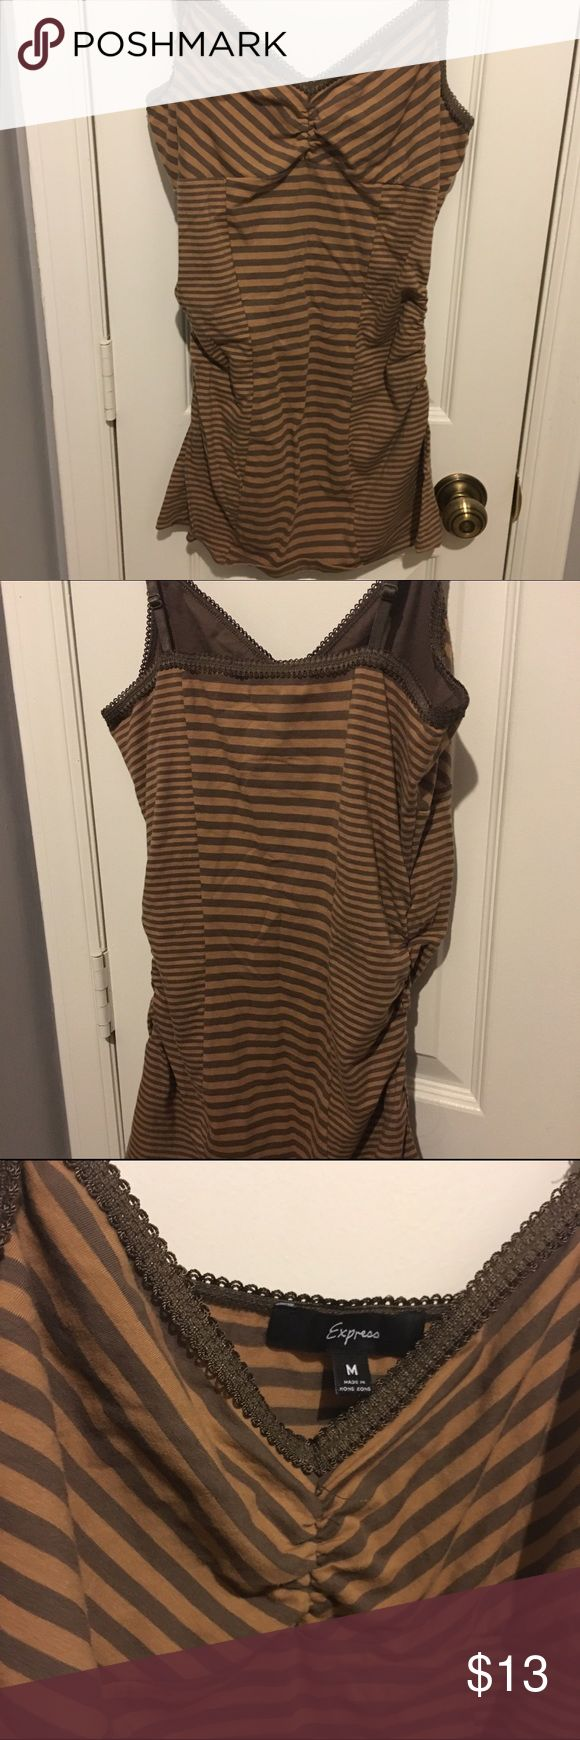 Striped fitted brown Express spaghetti strap tank Striped fitted brown Express spaghetti strap tank. Like new. Super long and cute. Very flattering. Express Tops Camisoles